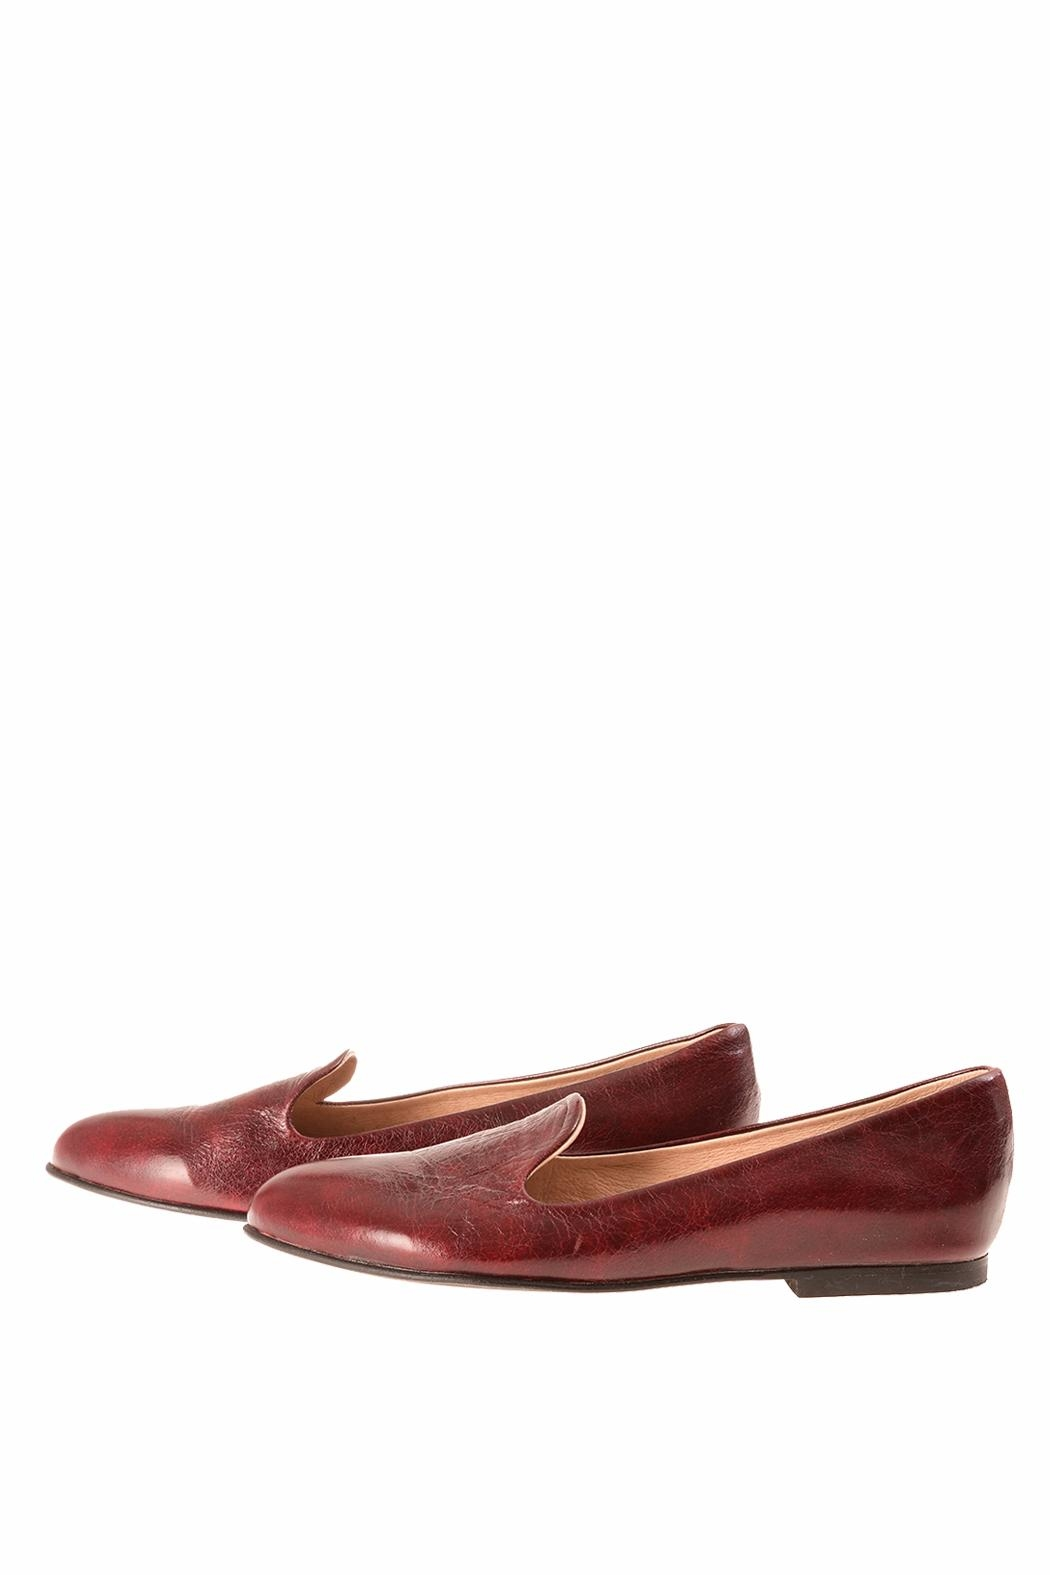 Bottega Bash Bourdeaux Leather Loafers - Front Cropped Image